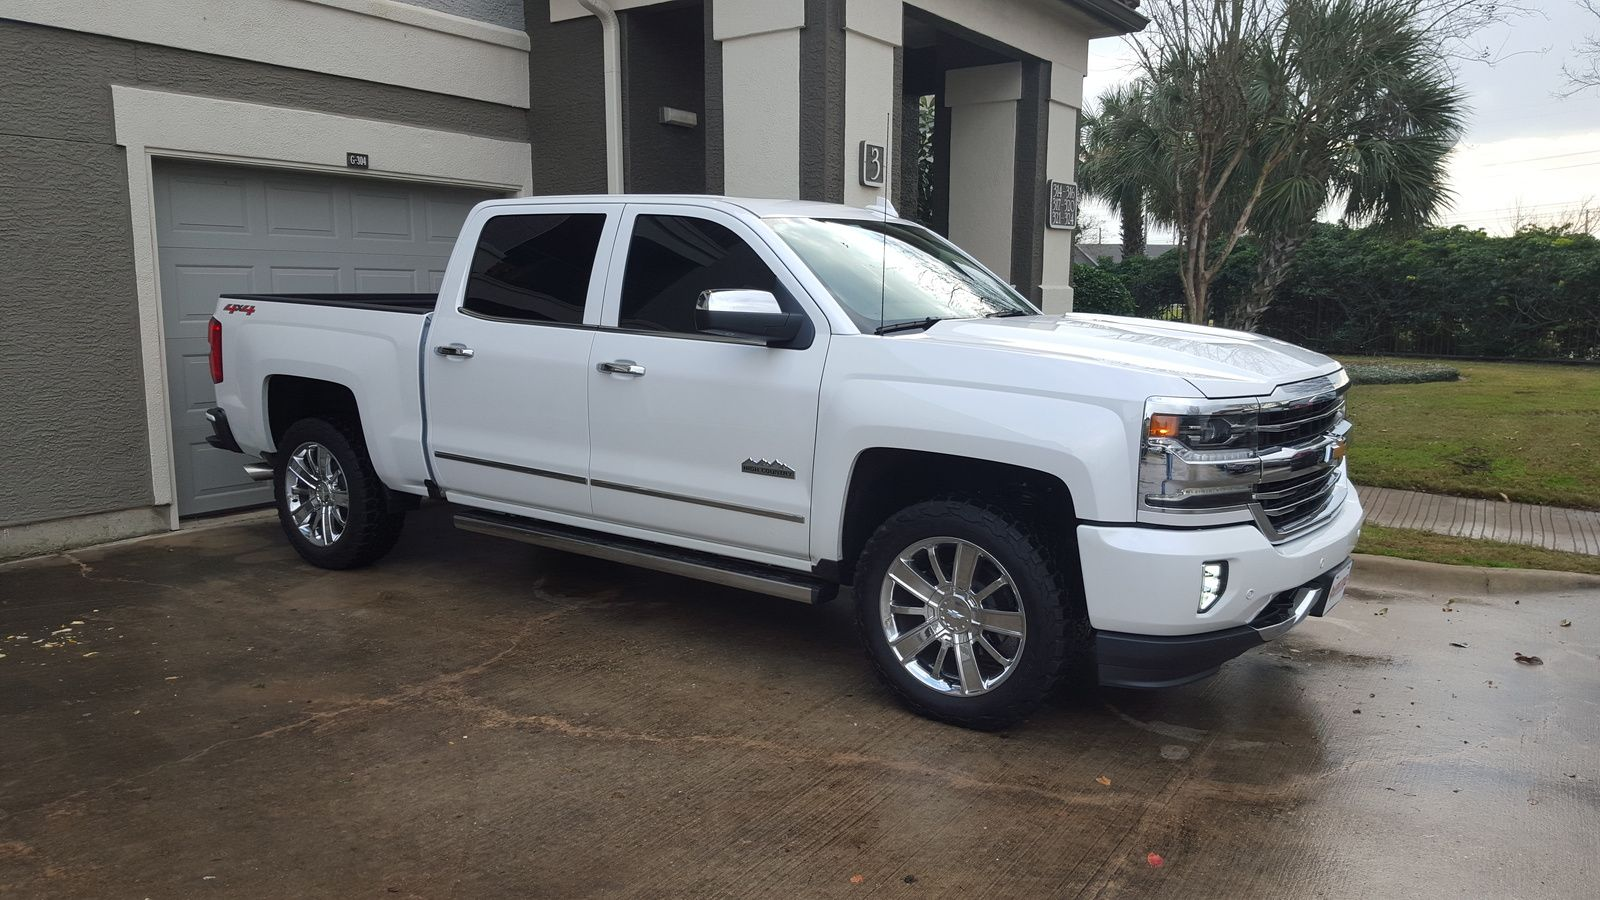 The 2015 silverado rally edition has earned its stripes stand out with unique rally stripes and body color grills chevy trucks pinterest 2015